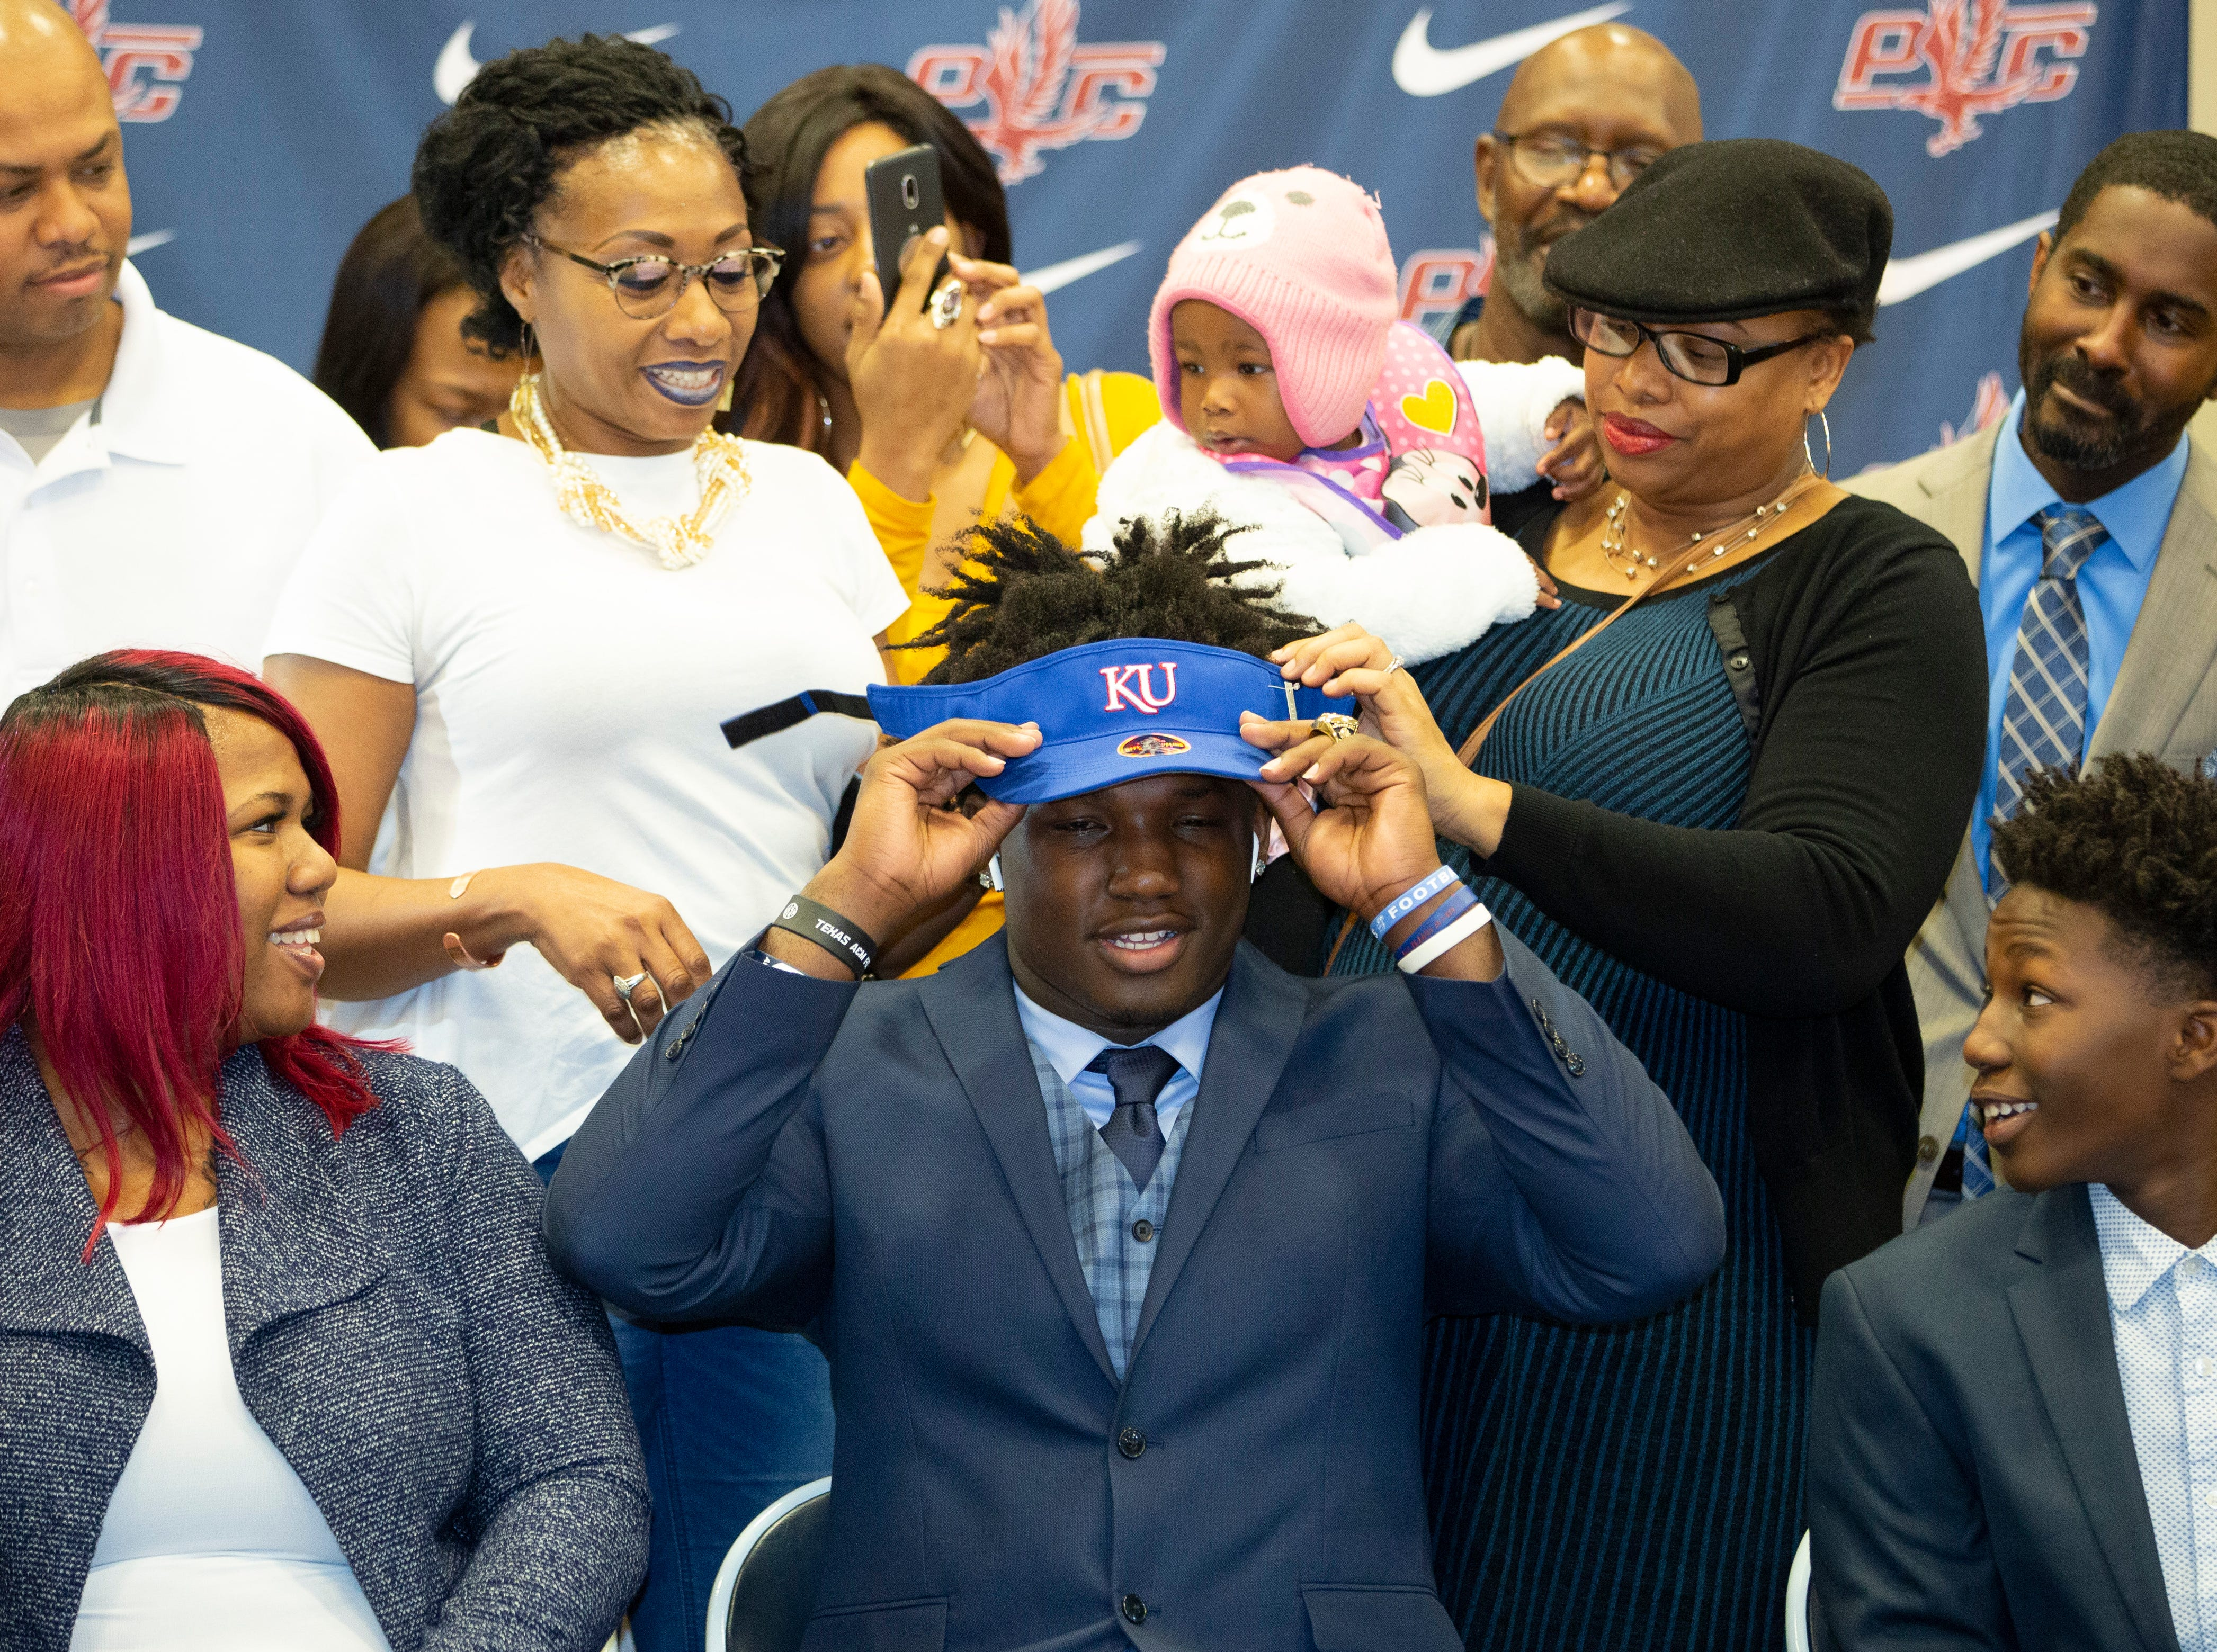 Marcus Harris, a football player at Park Crossing, signed with Kansas.